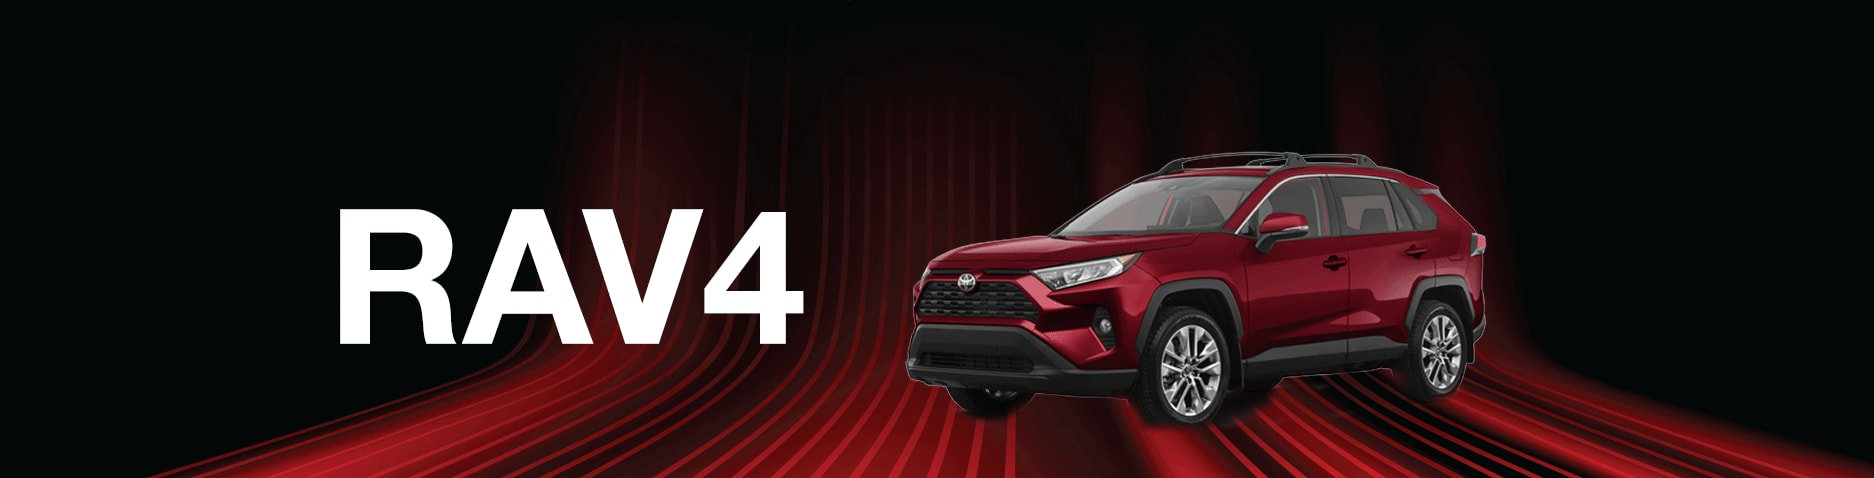 2018 Toyota RAV4 Review and Comparison in Albuquerque, NM